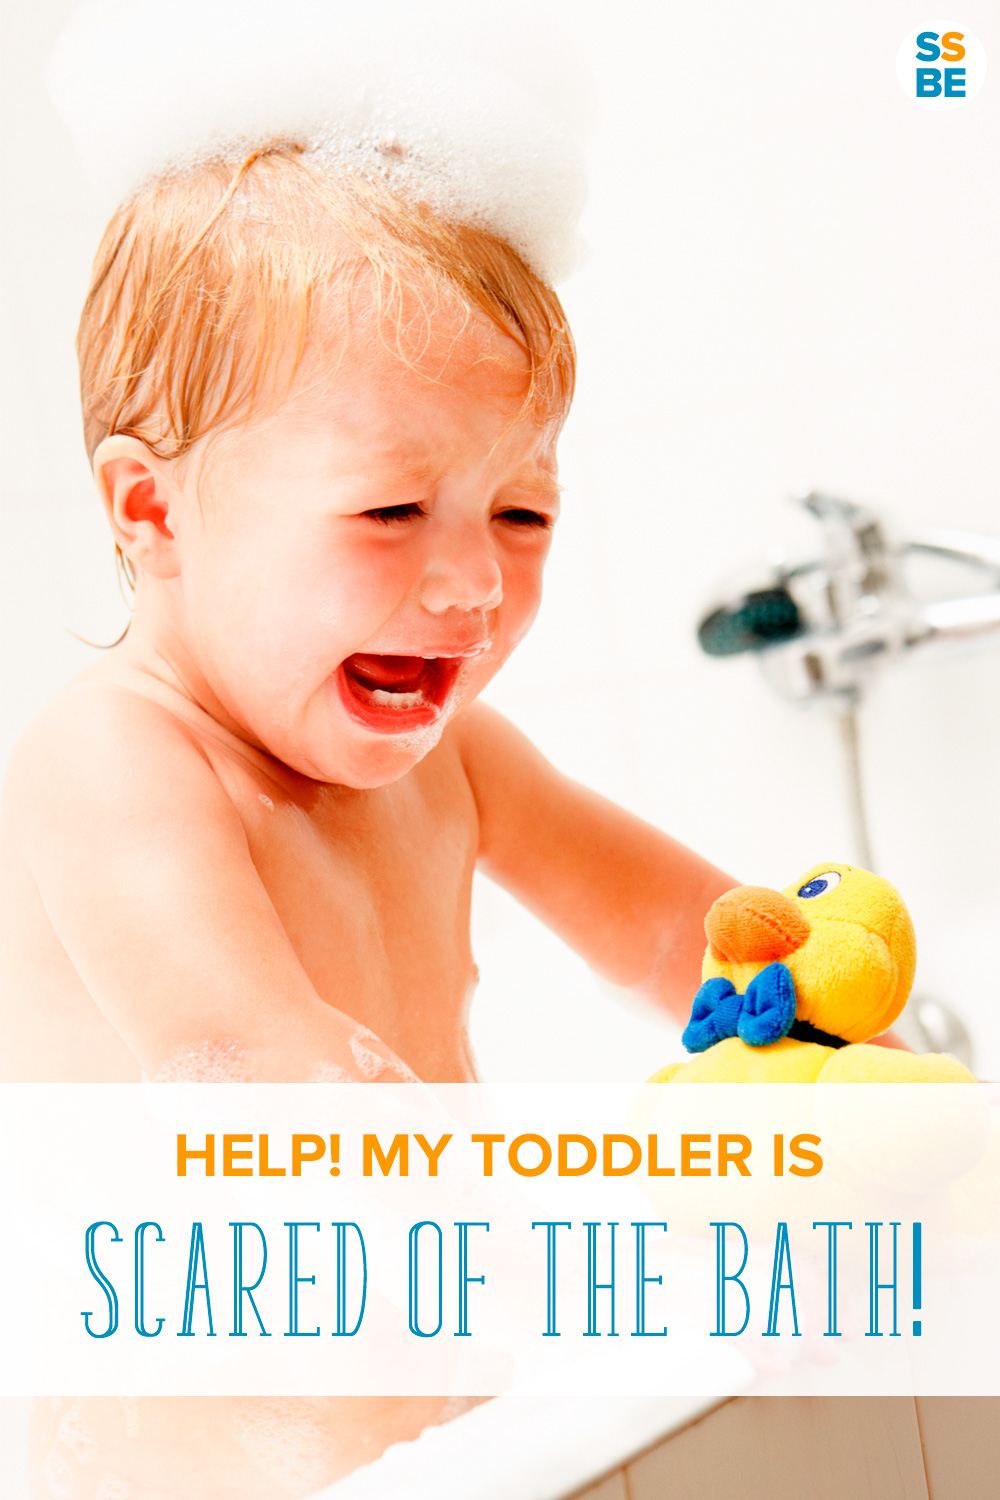 If your toddler has developed a sudden fear of bathing (even when he always enjoyed it), you're not alone. Discover effective techniques to help make bath time easy and fun.